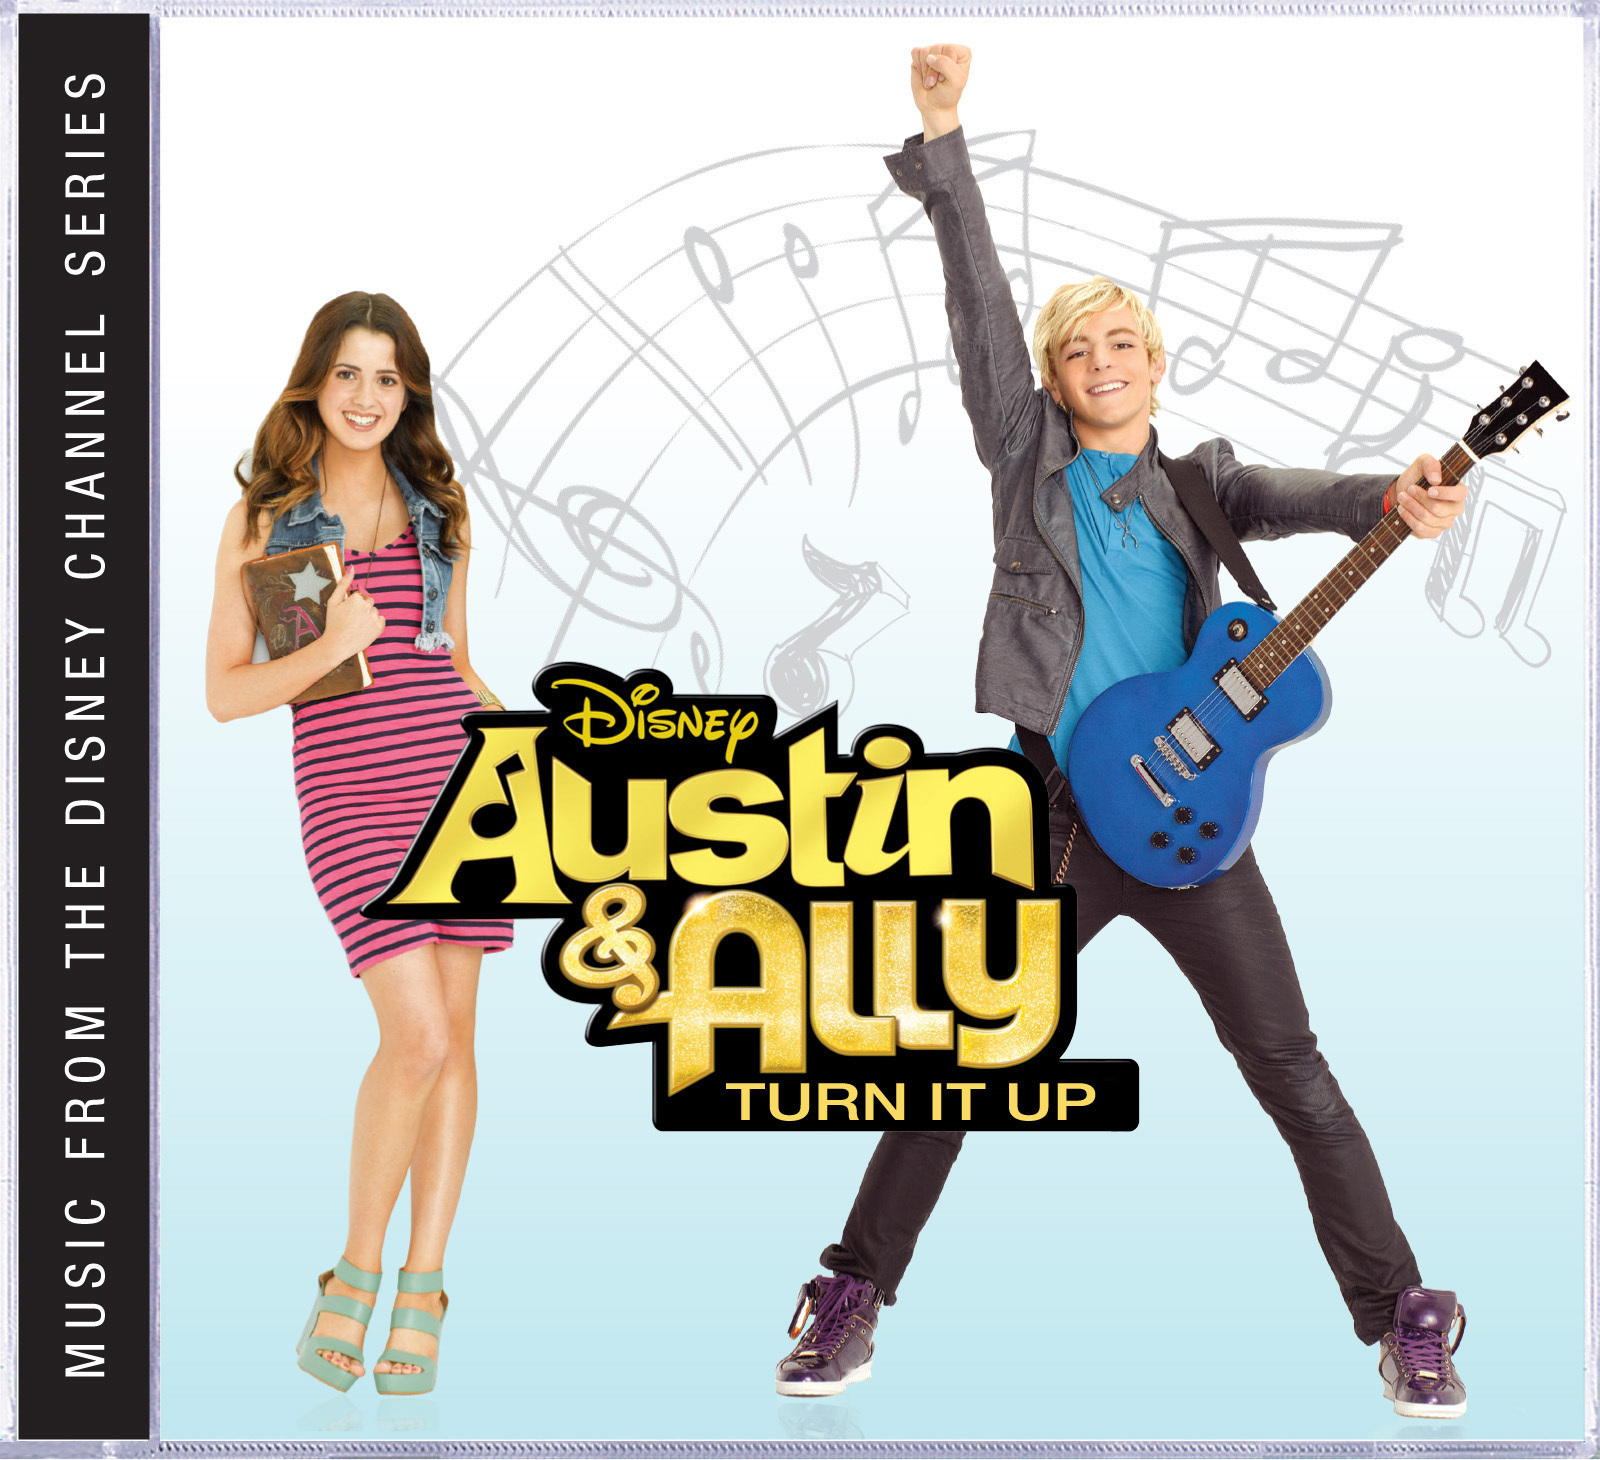 Walt Disney Records' AUSTIN & ALLY: TURN IT UP Out Today, Feat. Ross Lynch and Laura Marano